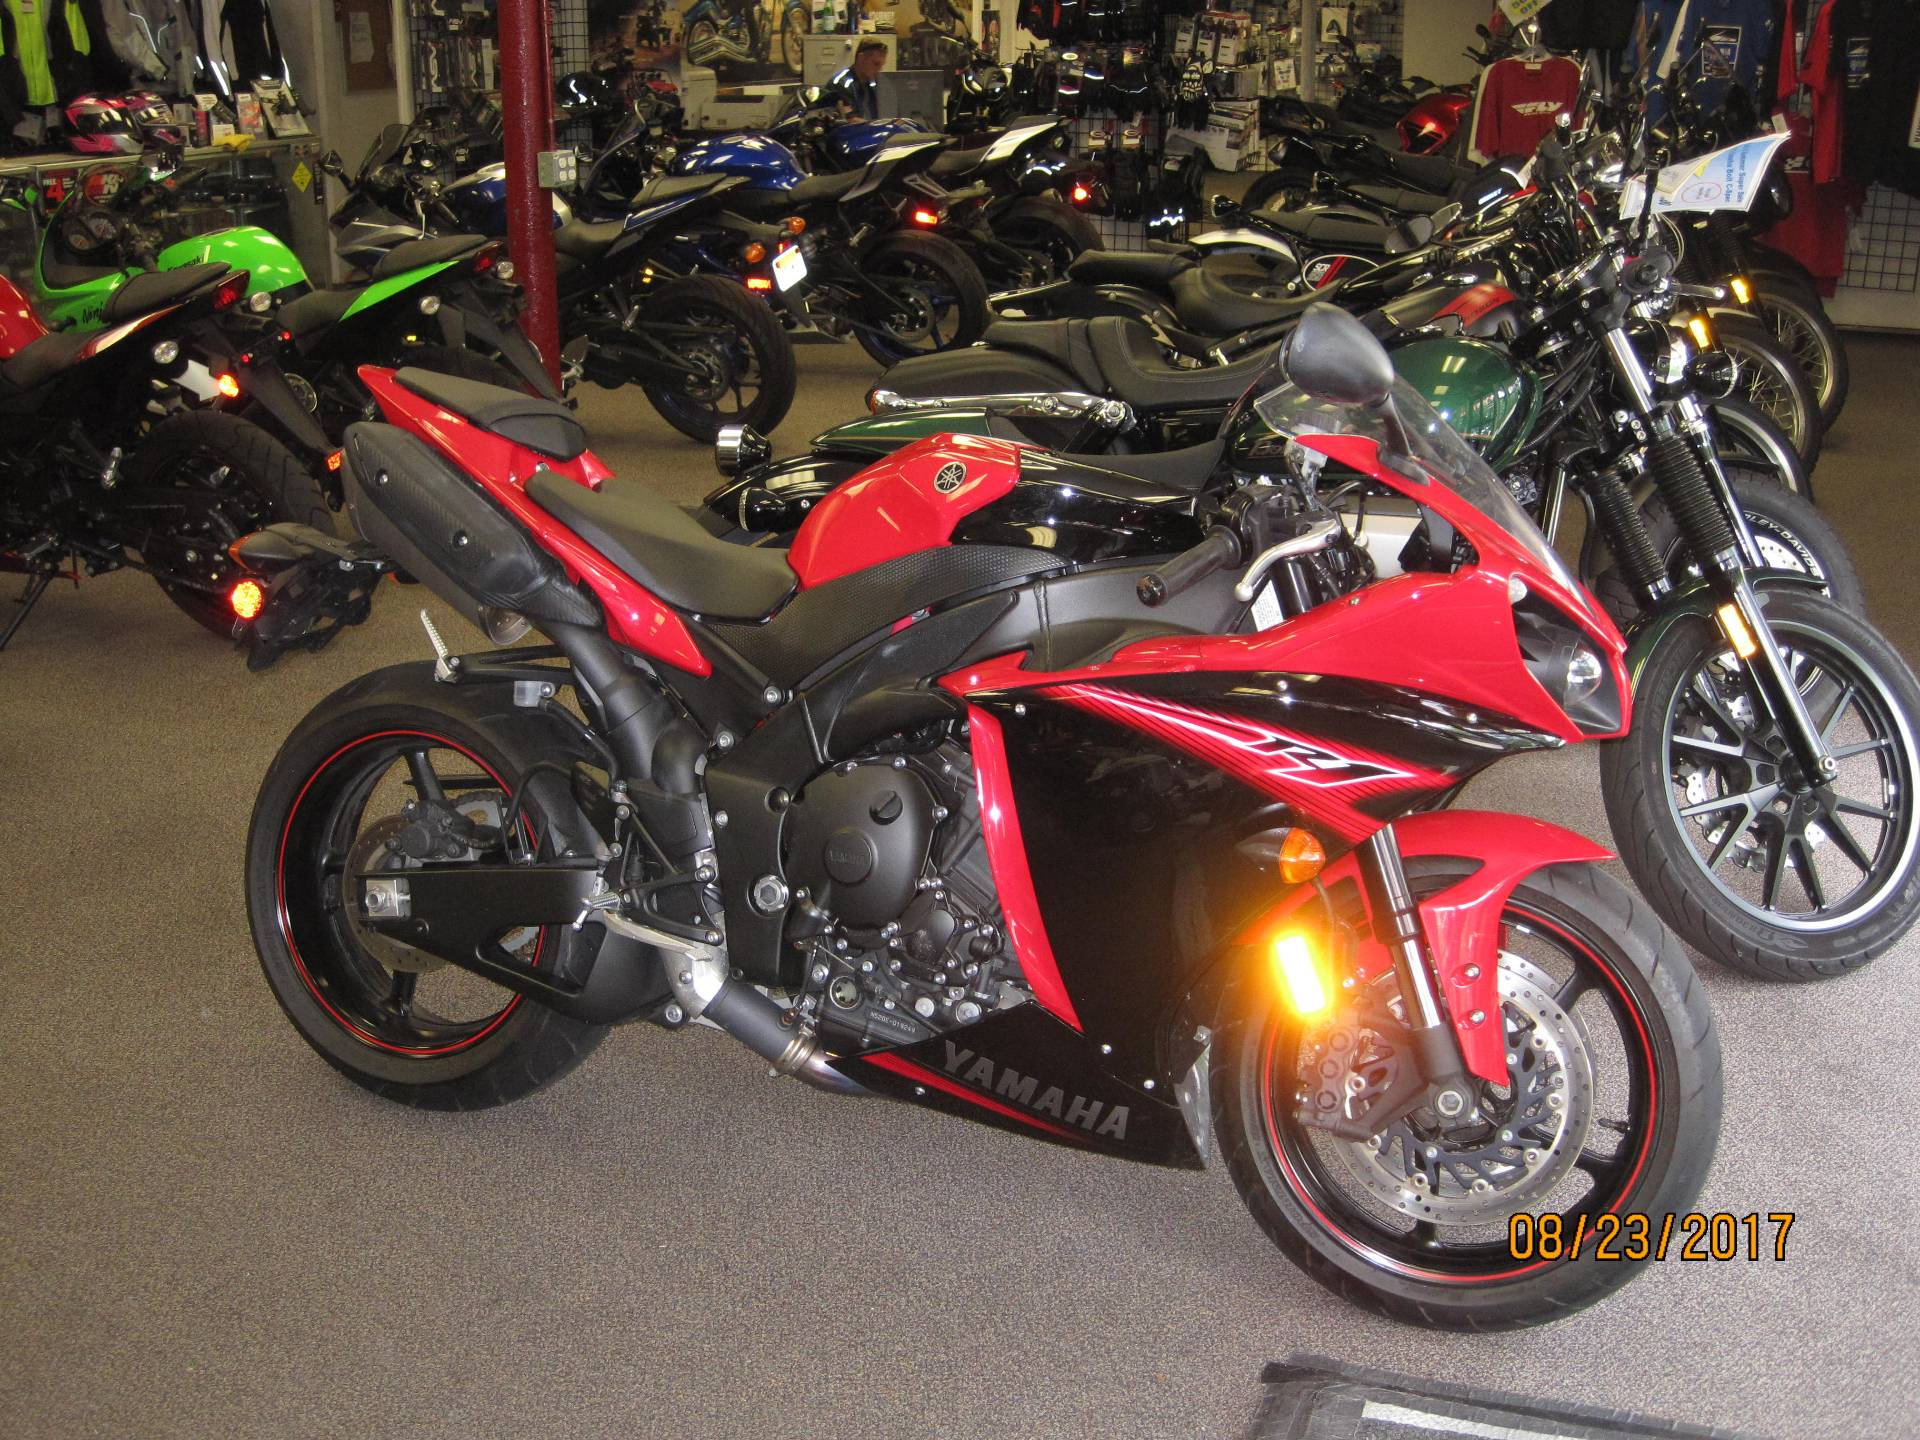 2013 Yamaha YZF-R1 for sale 63246